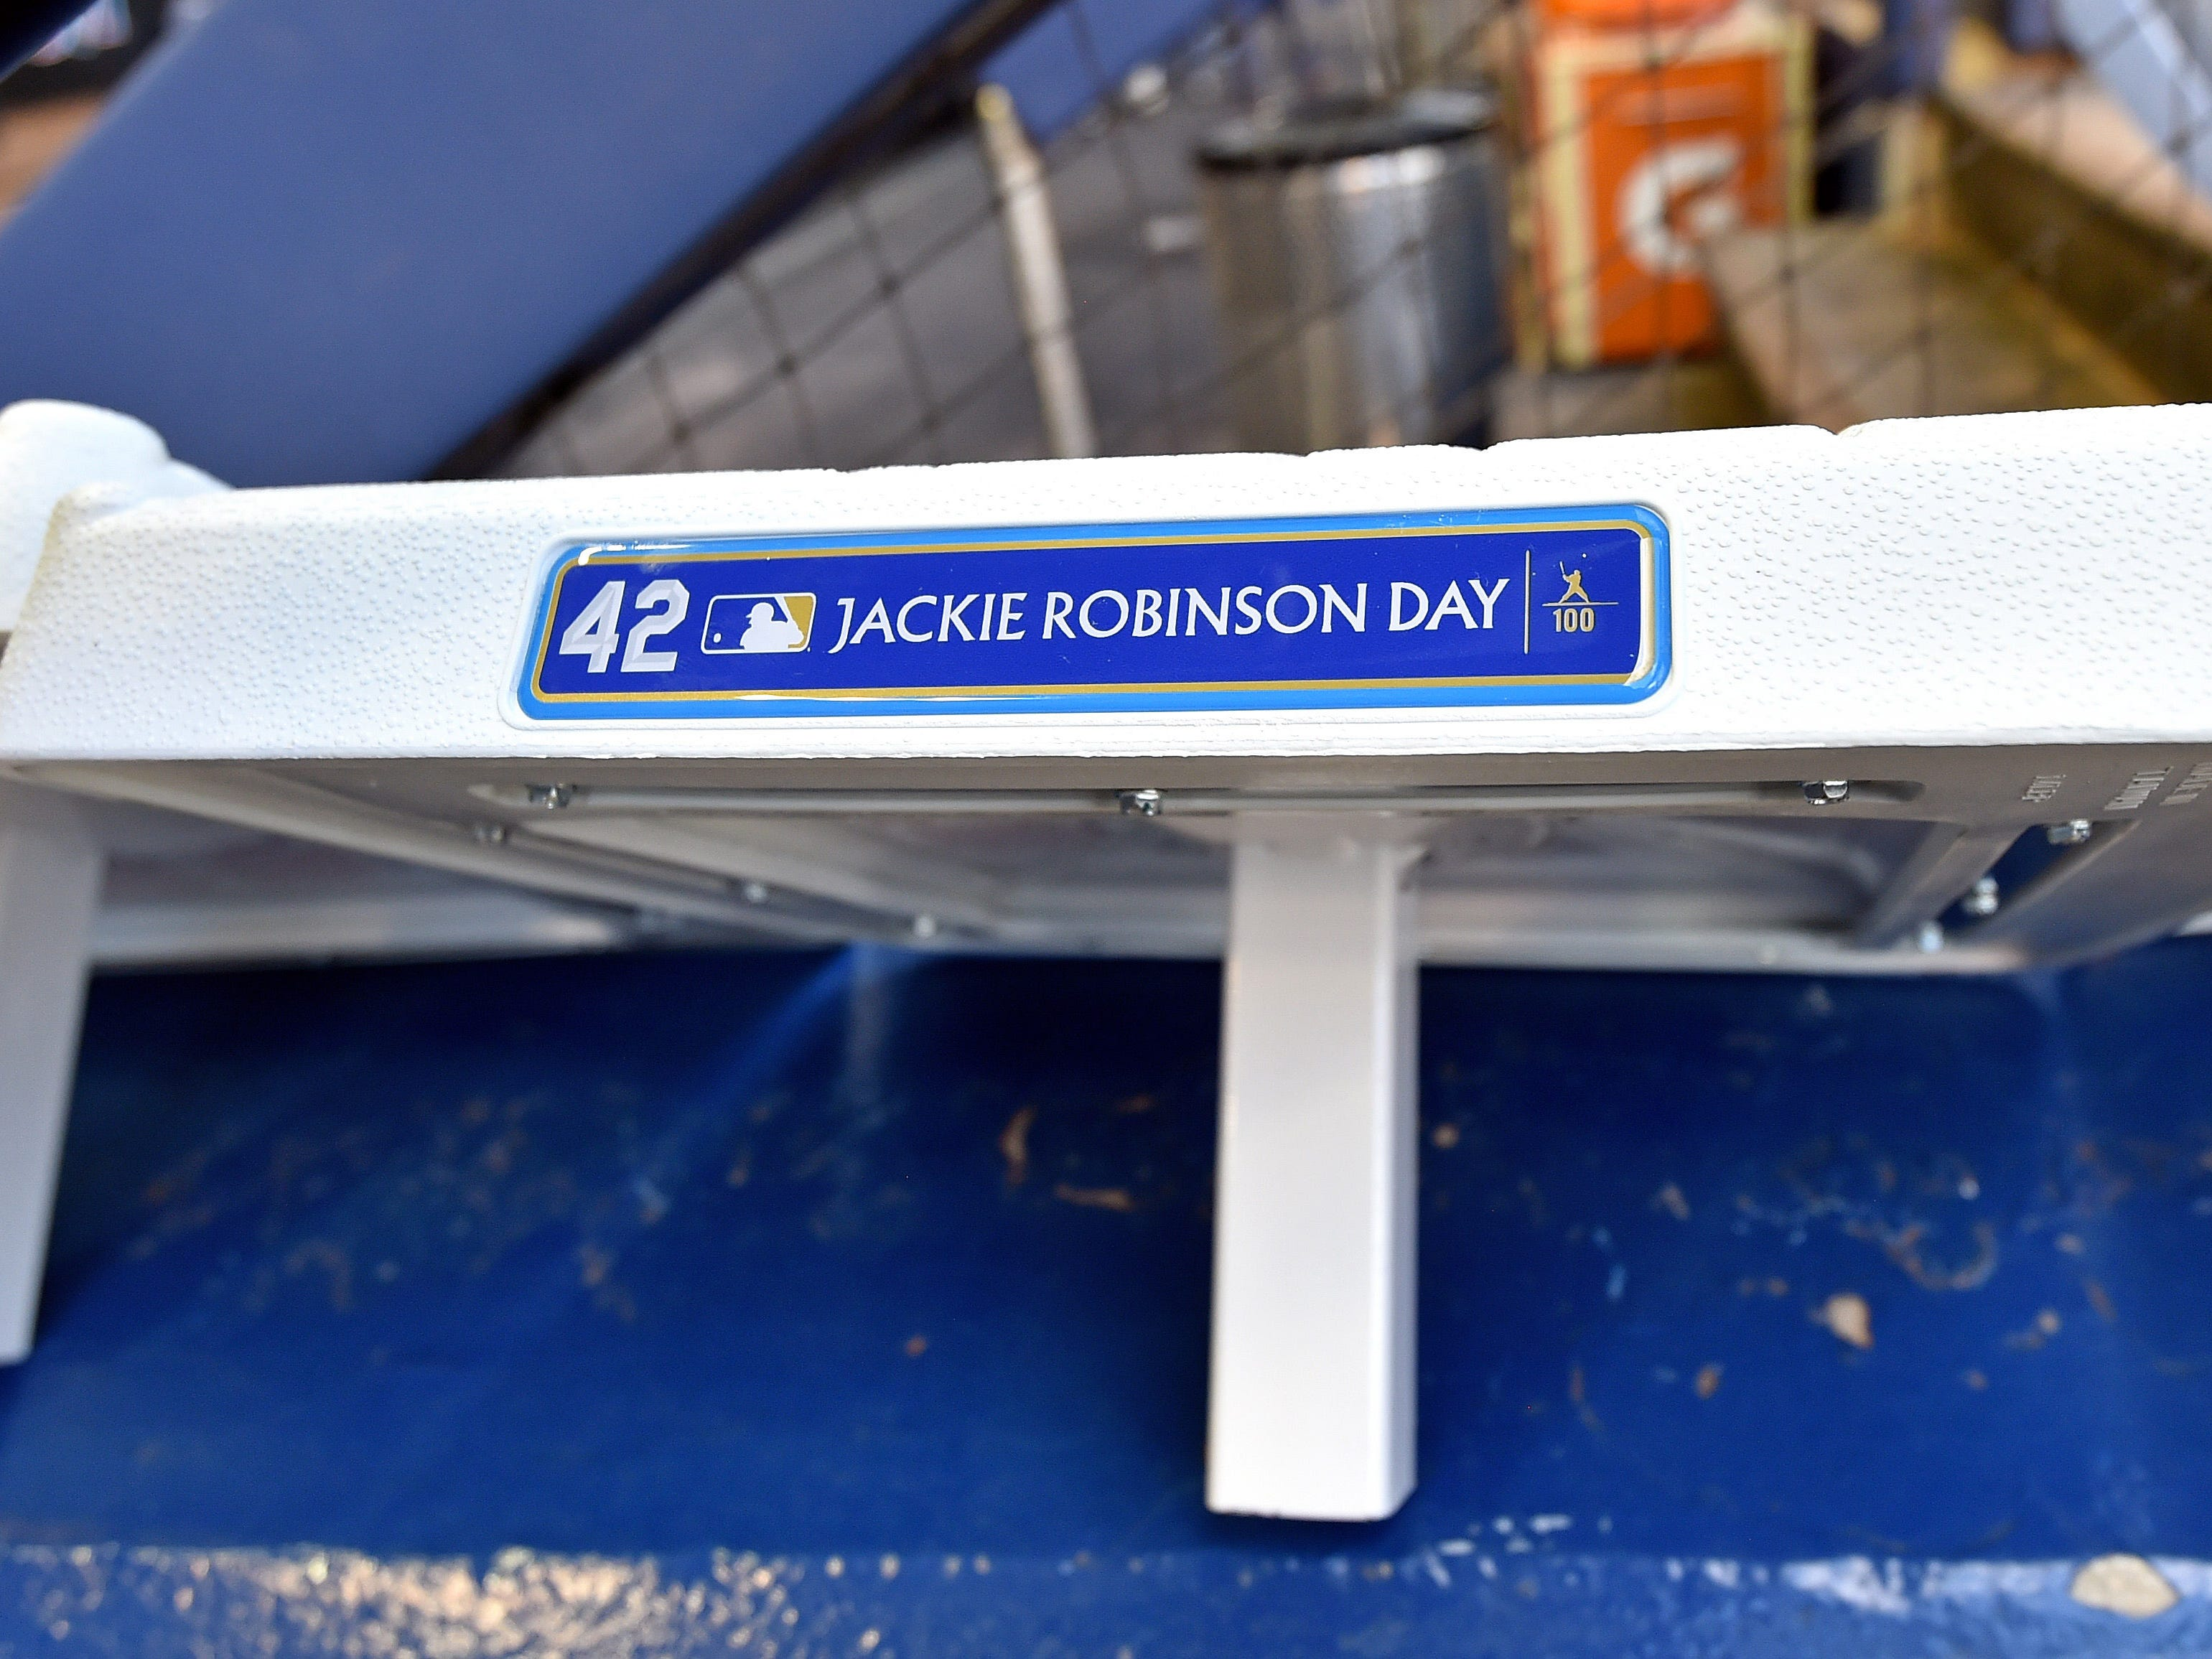 MLB bases have a plaque honoring Jackie Robinson.